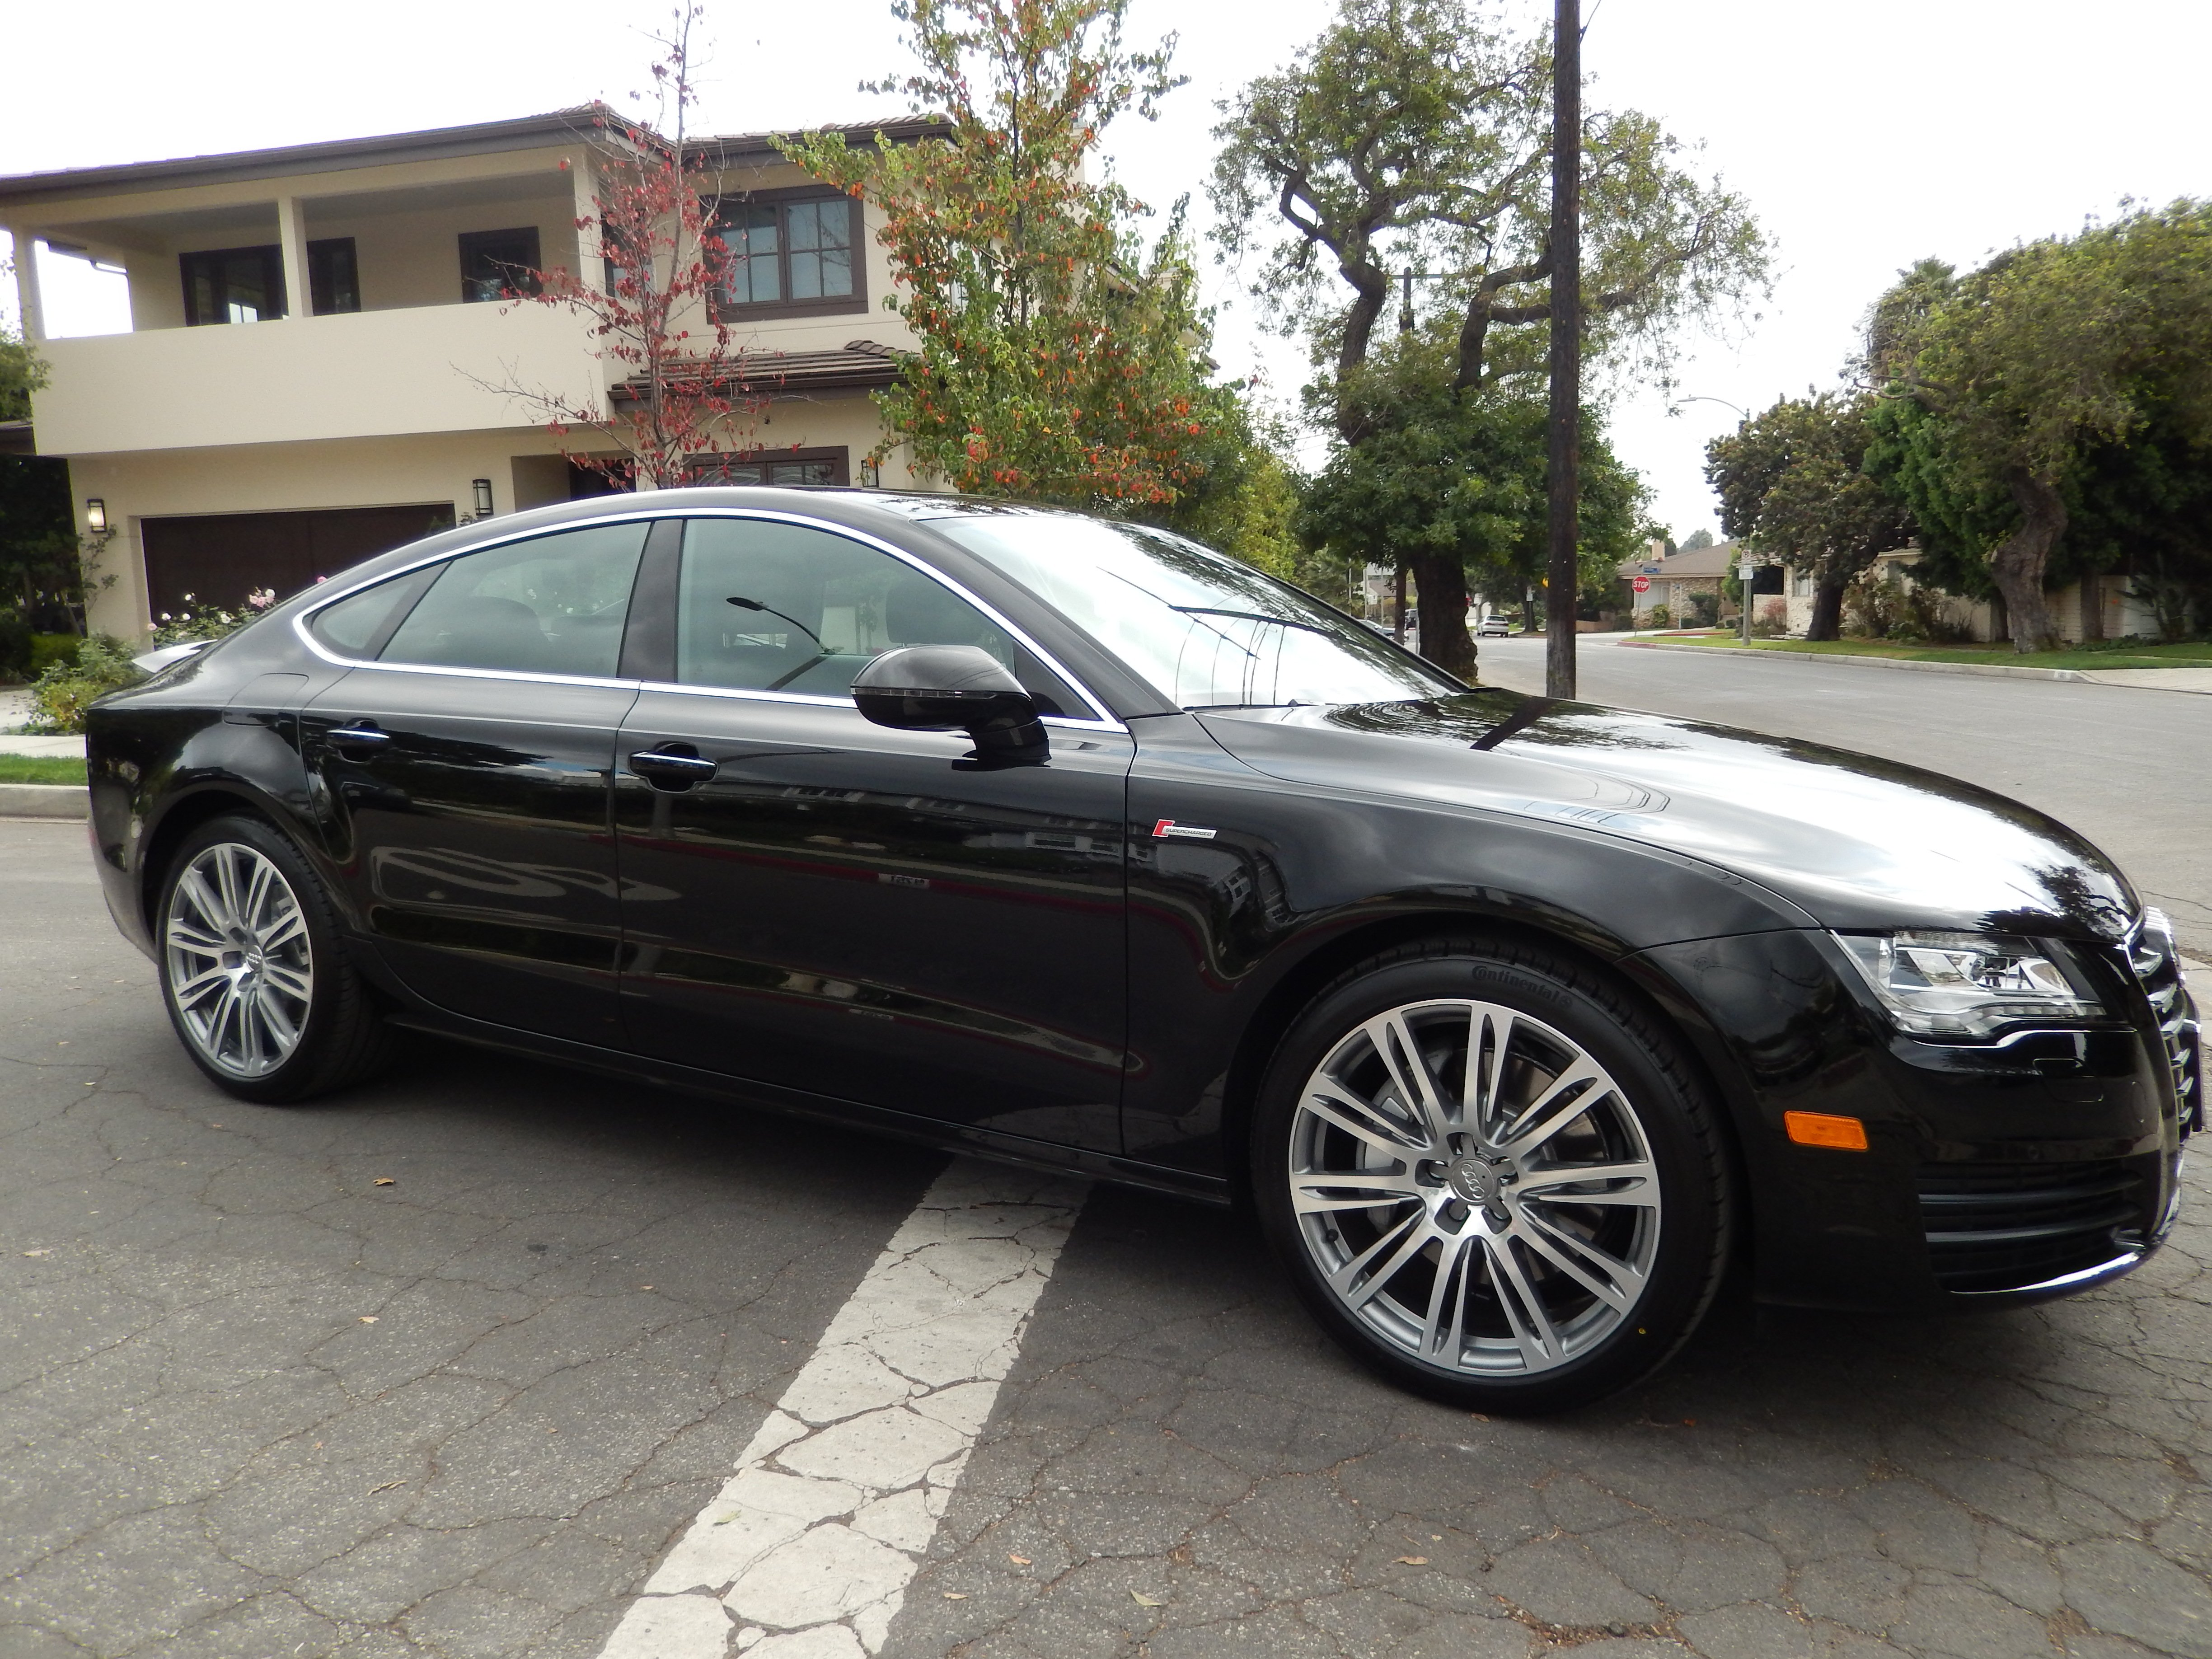 2014 Audi A7 Rental Los Angeles And Los Angeles Airport Lax